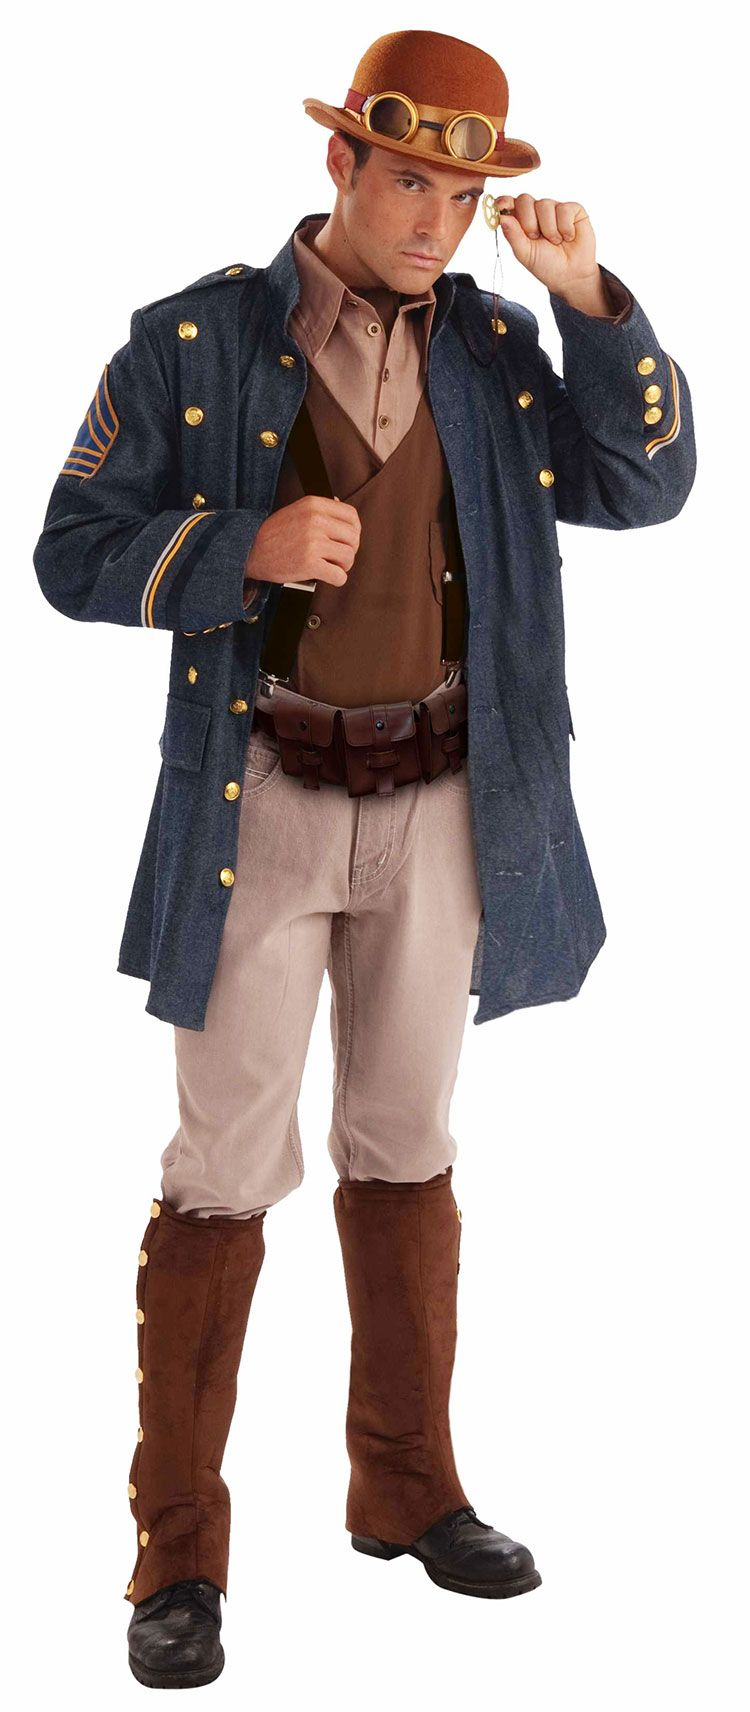 66151-Steampunk-General-Costume-large | Steampunk costume ...